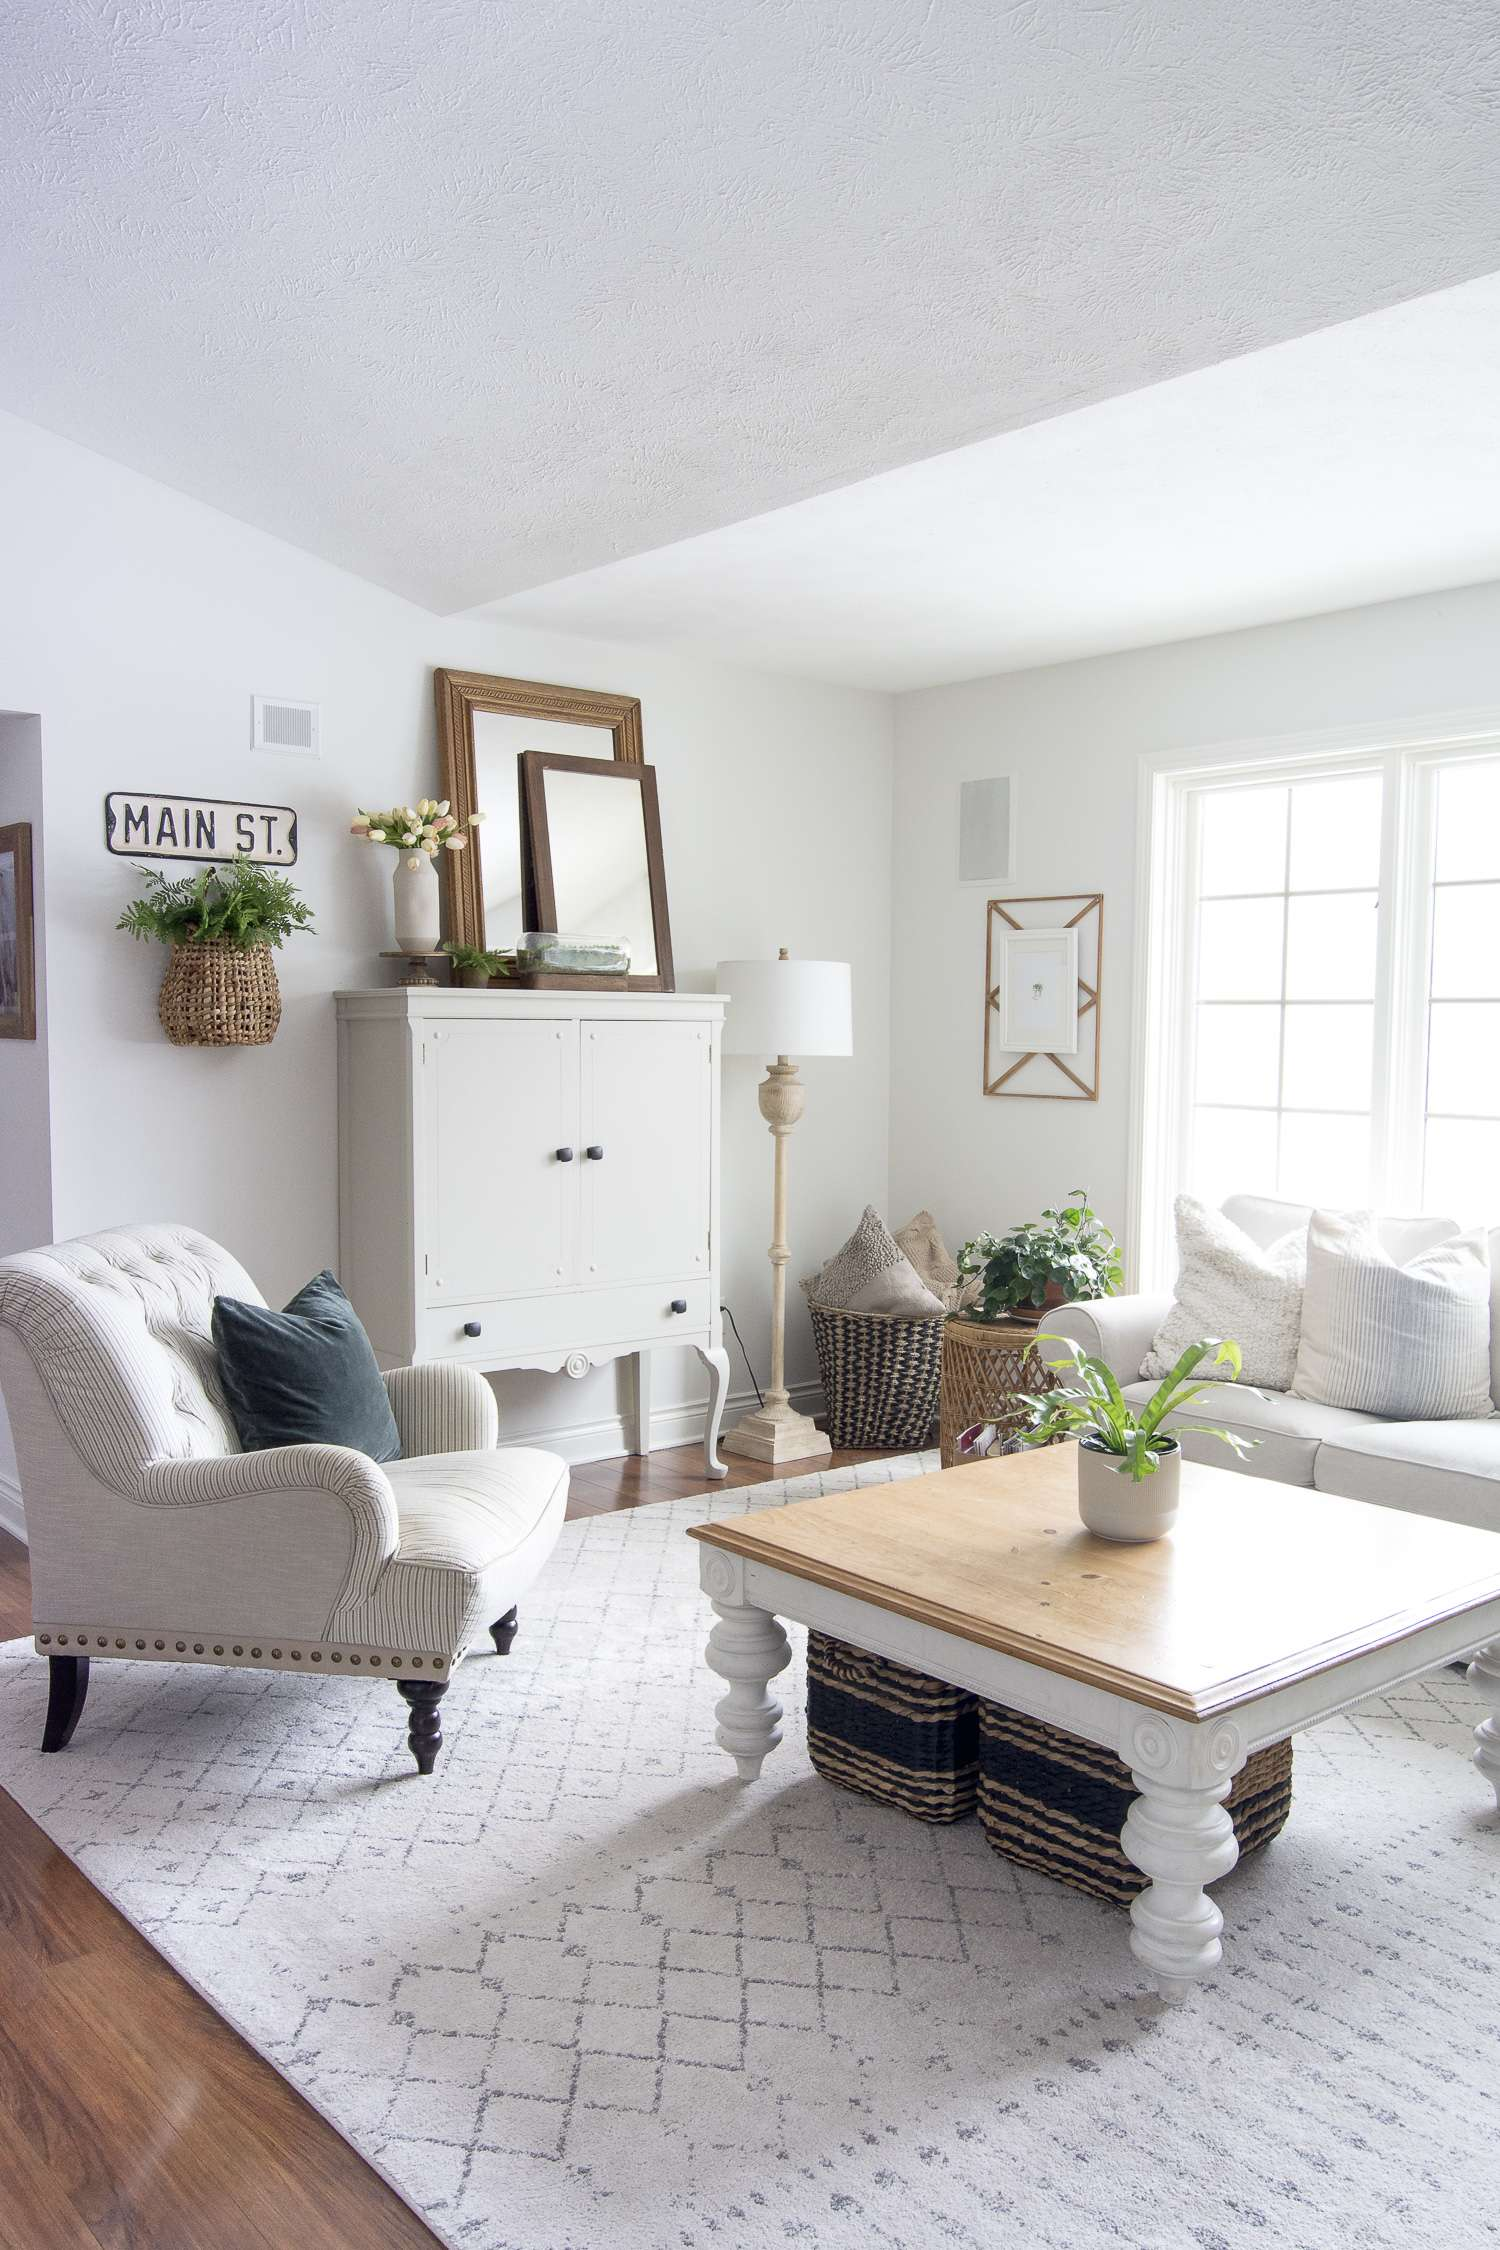 Do you love the concept of reduce, reuse, recycle? Today I'm sharing several upcycling ideas for affordable home furnishings! #fromhousetohaven #upcyclingideas #repurposeddecor